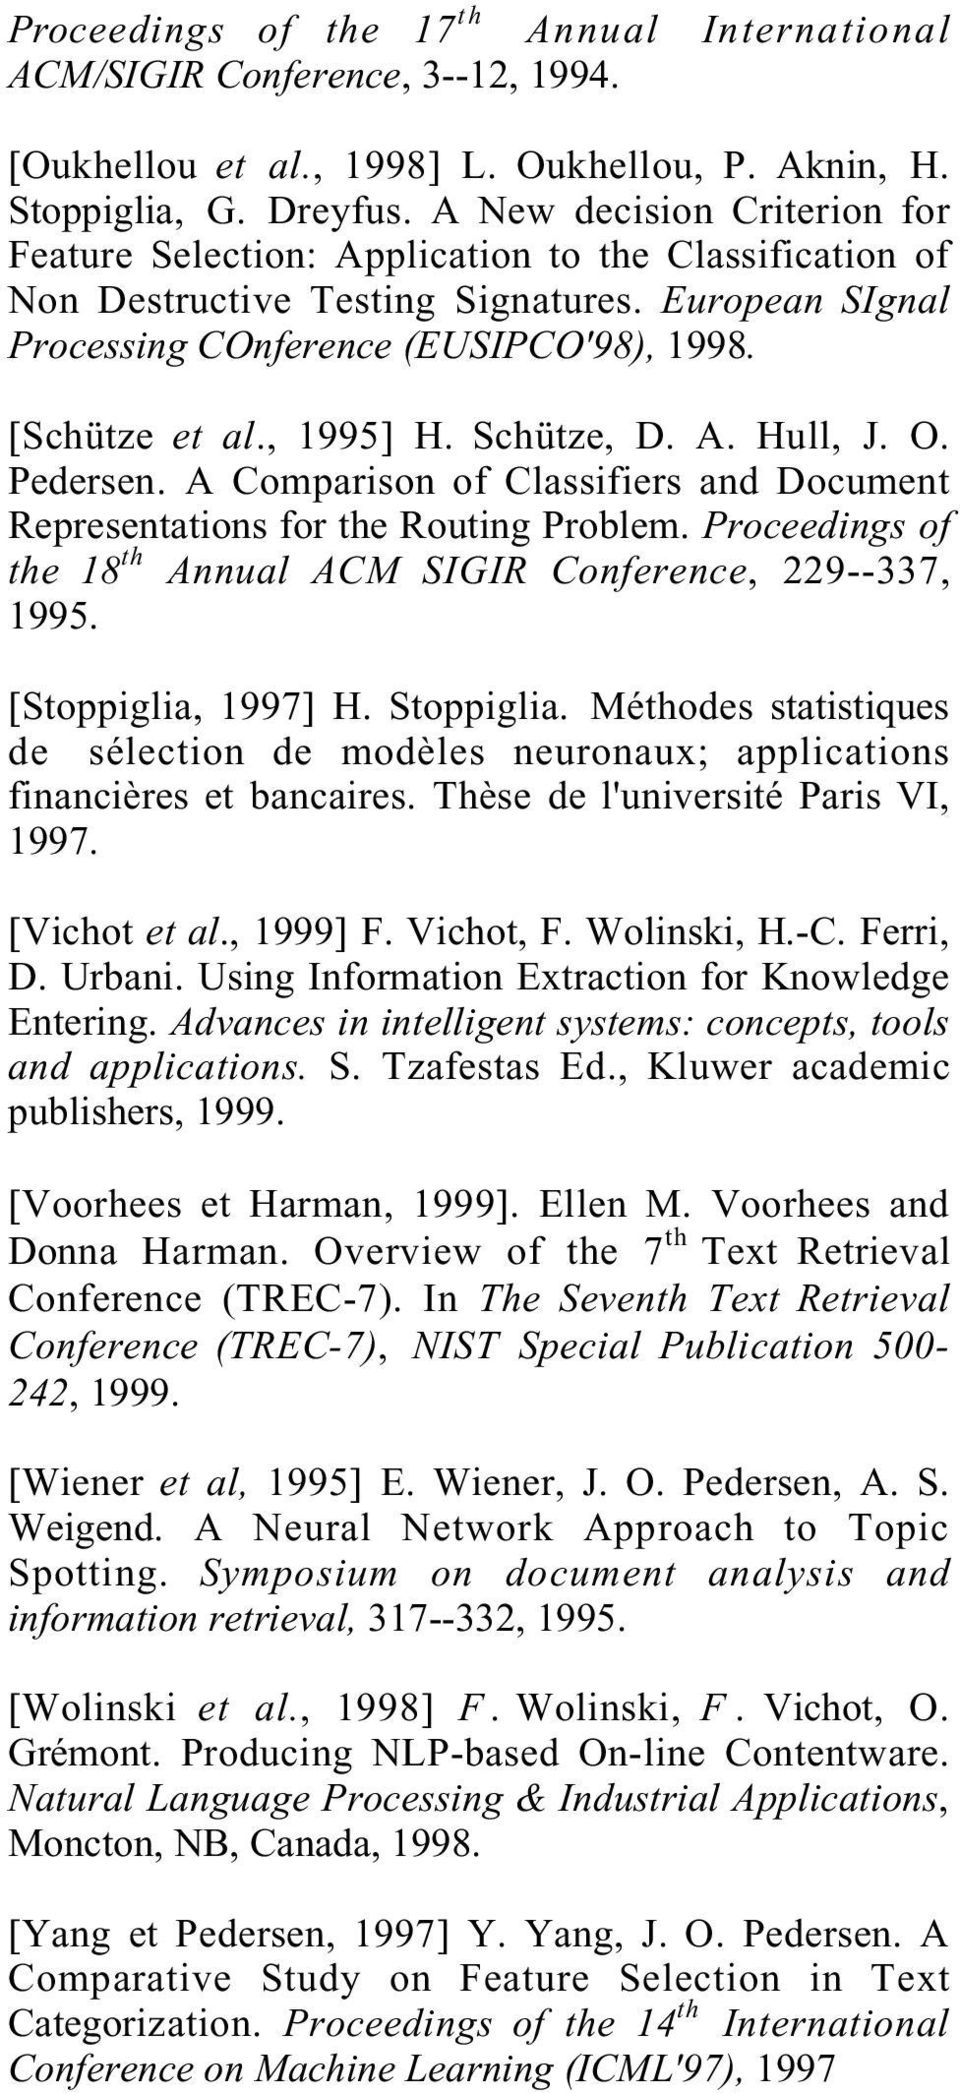 , 1995] H. Schütze, D. A. Hull, J. O. Pedersen. A Comparison of Classifiers and Document Representations for the Routing Problem. Proceedings of the 18 th Annual ACM SIGIR Conference, 229--337, 1995.